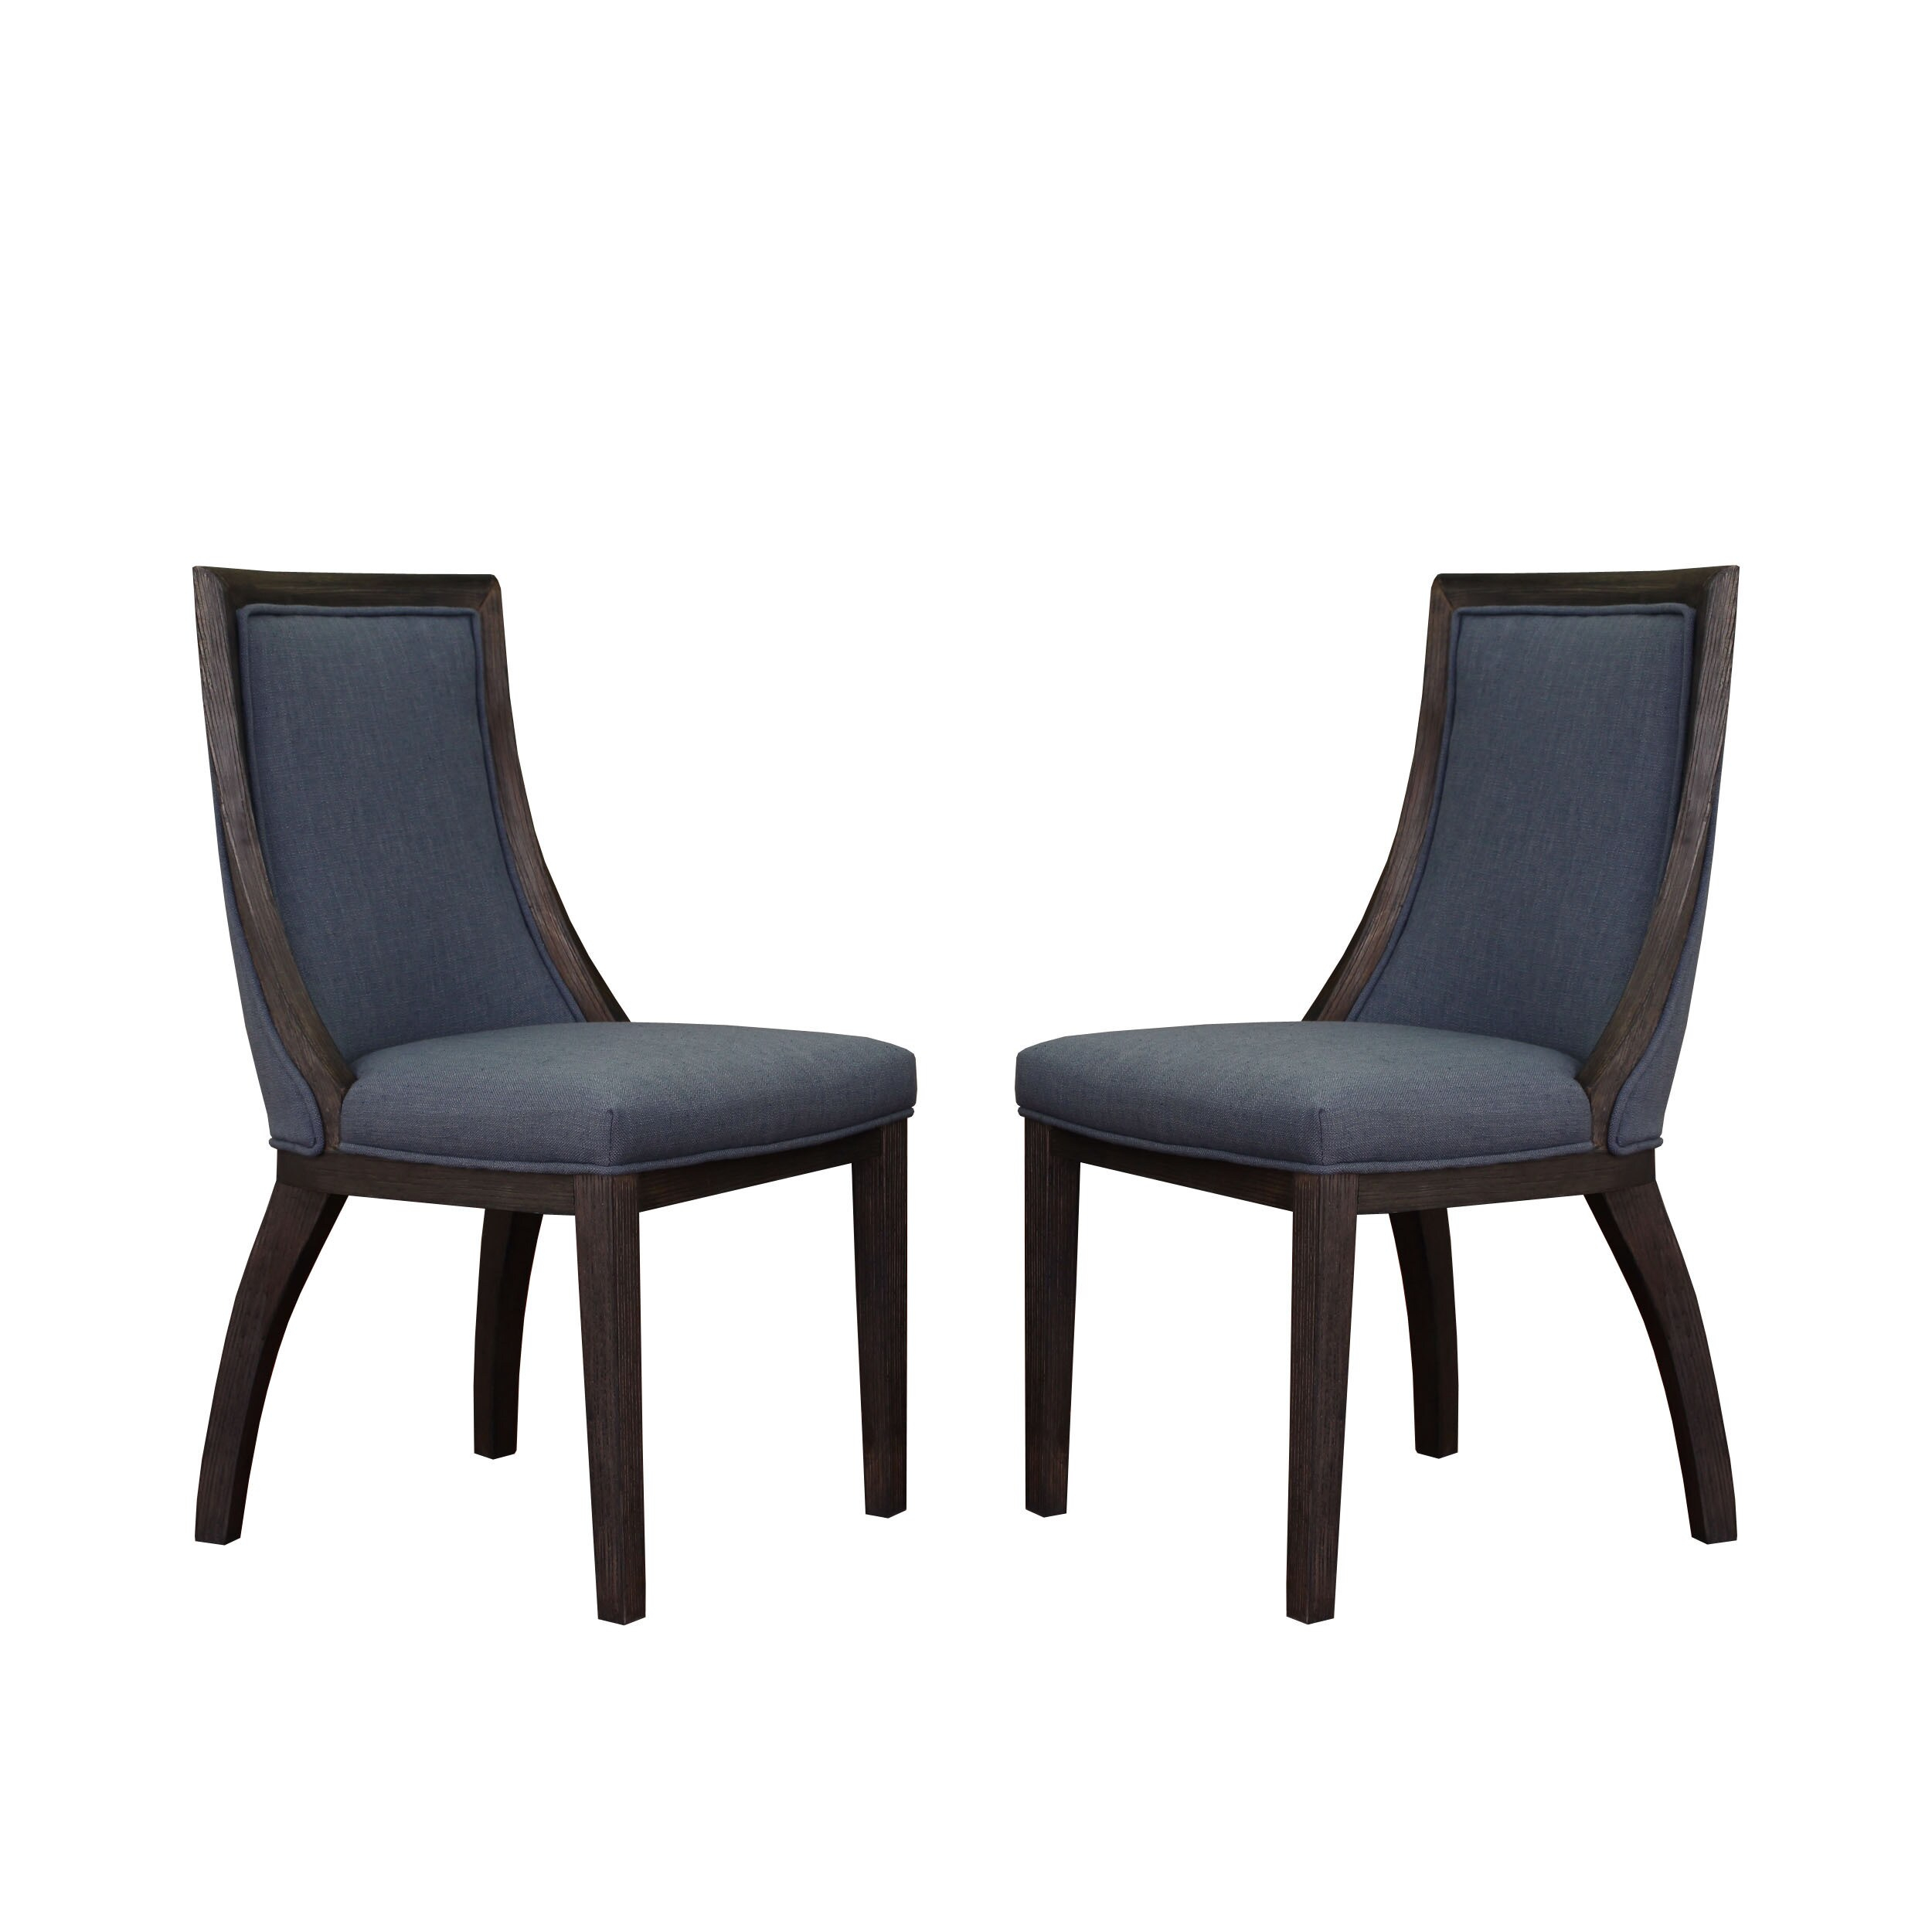 The Gray Barn Park Avenue Austria Navy Linen Dining Chair (Set Of 2) Within Madison Avenue Tufted Cotton Upholstered Dining Chairs (Set Of 2) (View 7 of 15)